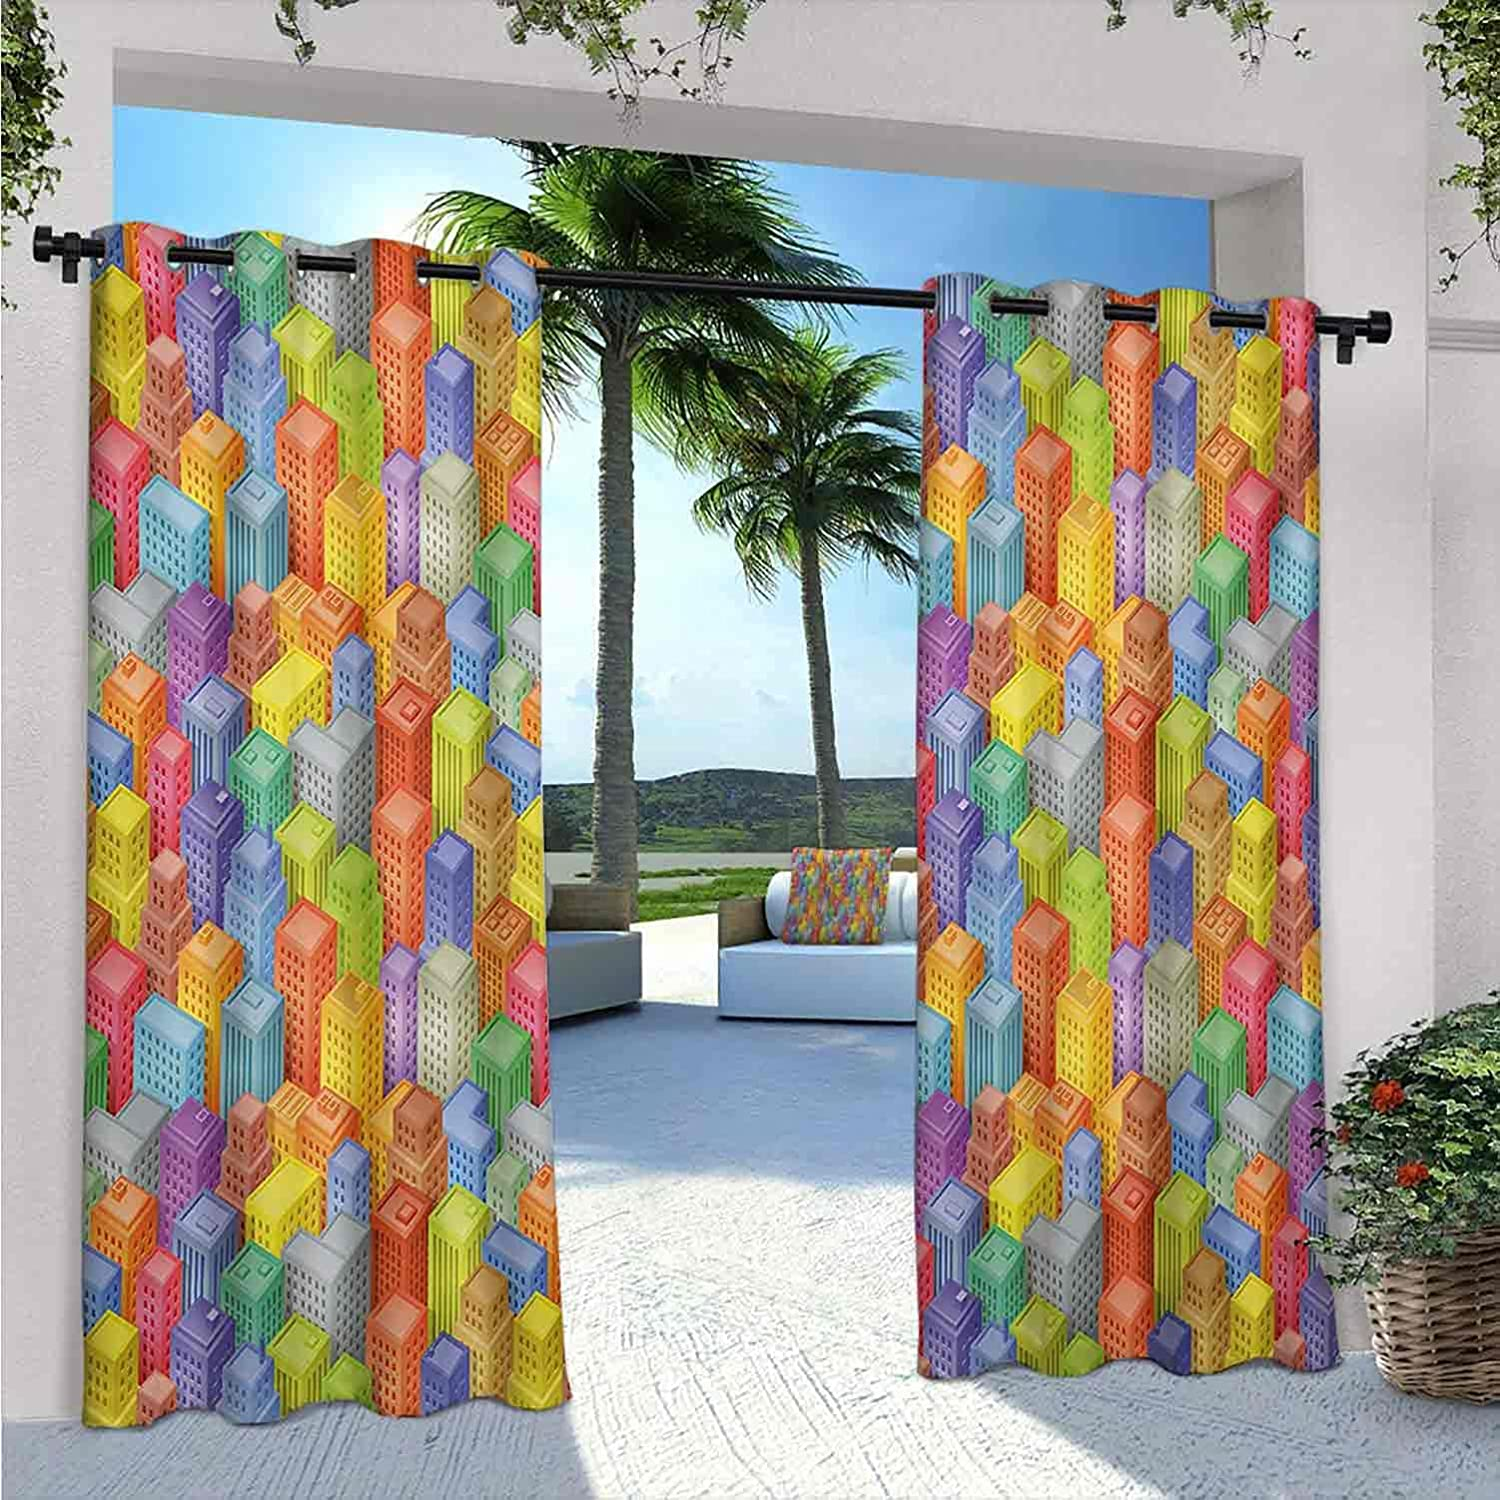 SEAL Challenge the lowest price of Japan ☆ limited product City Outdoor Patio Curtains Colorful with Skyscrapers I Cartoon